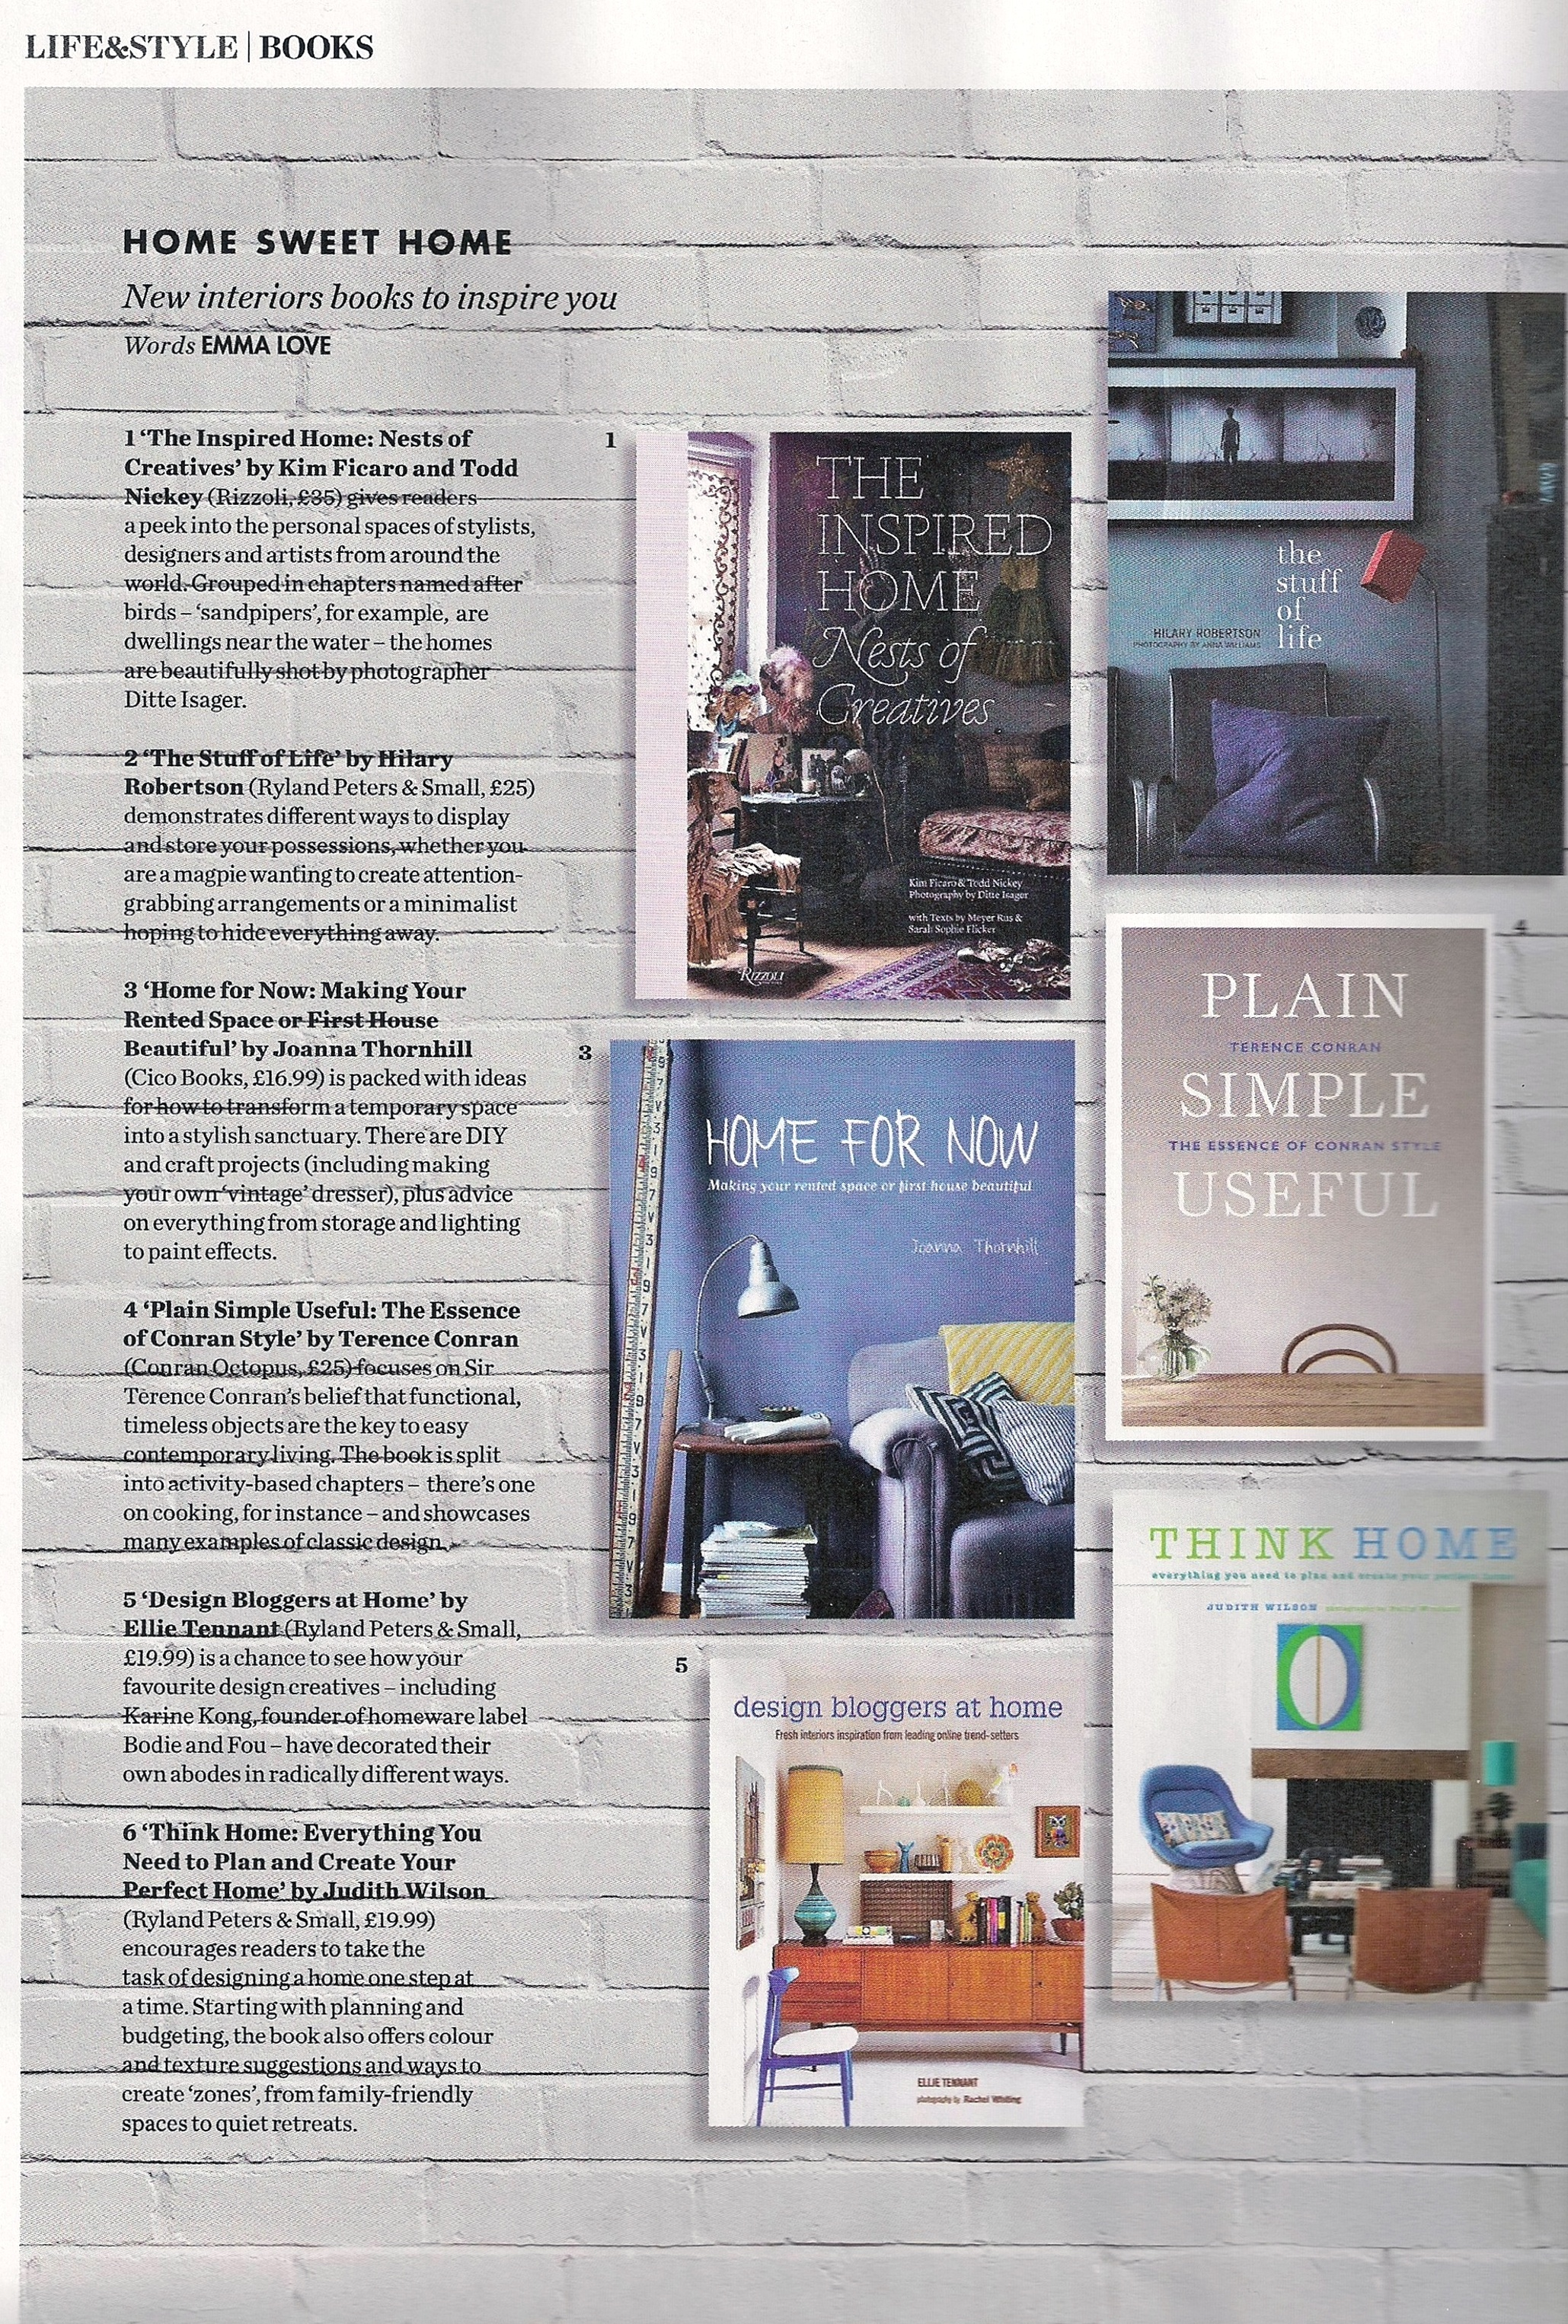 Elle Decoration Book Review page May 2014 with Home for Now by Joanna Thornhill.jpg